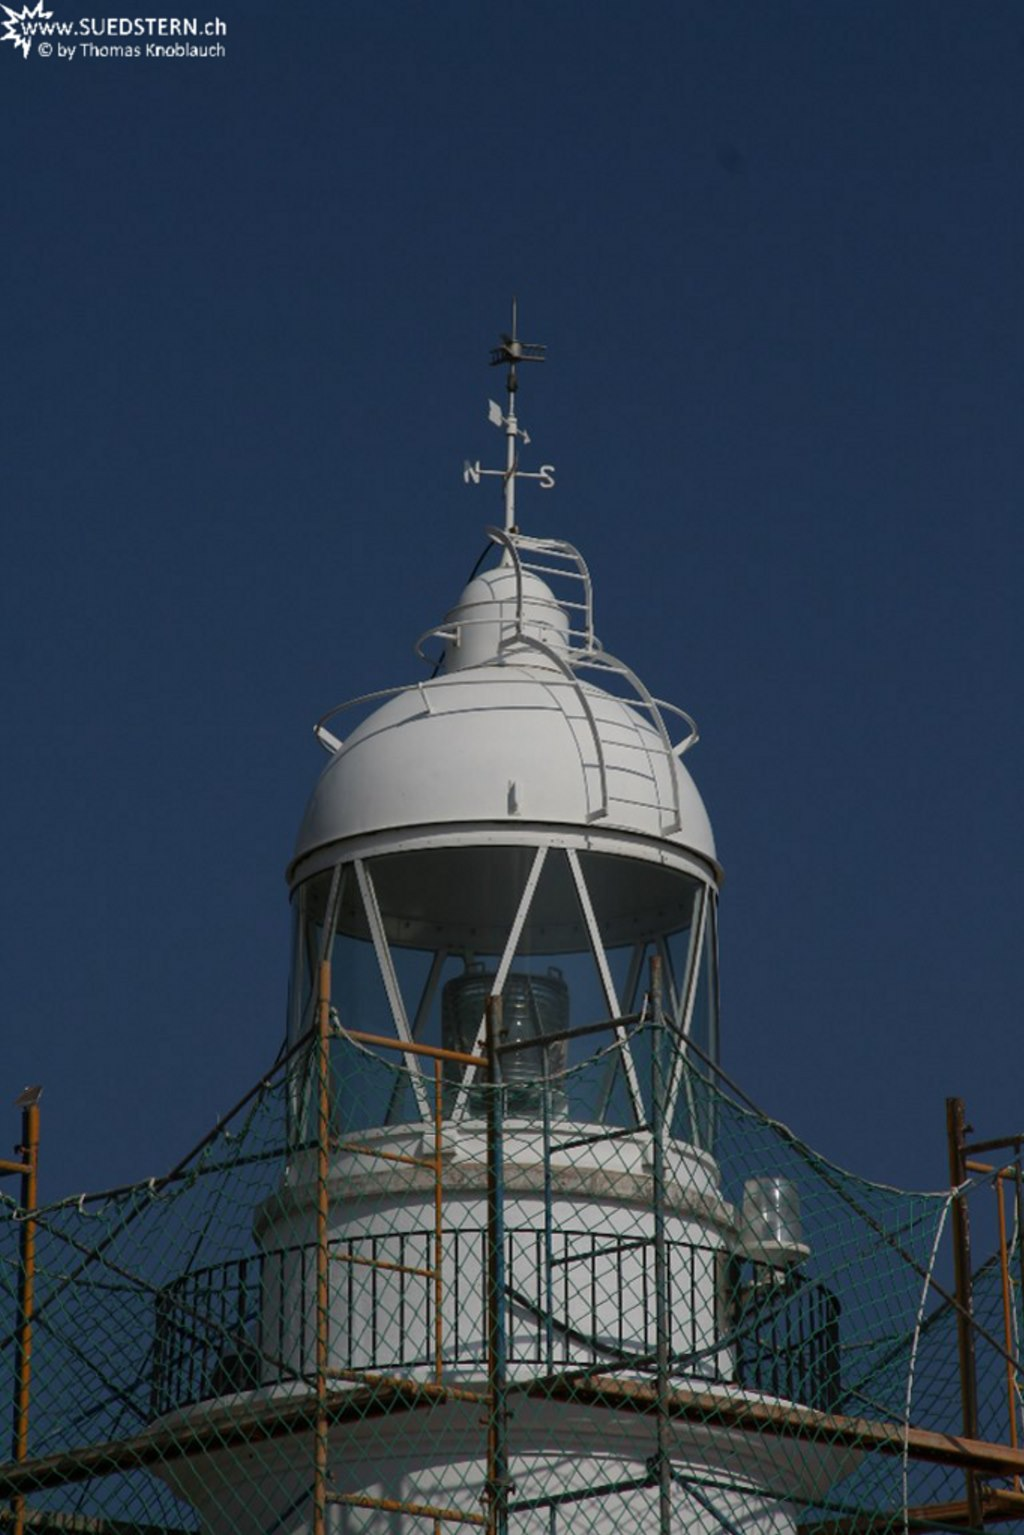 2008-09-03 - Lighthouse close up in Rosses, spain